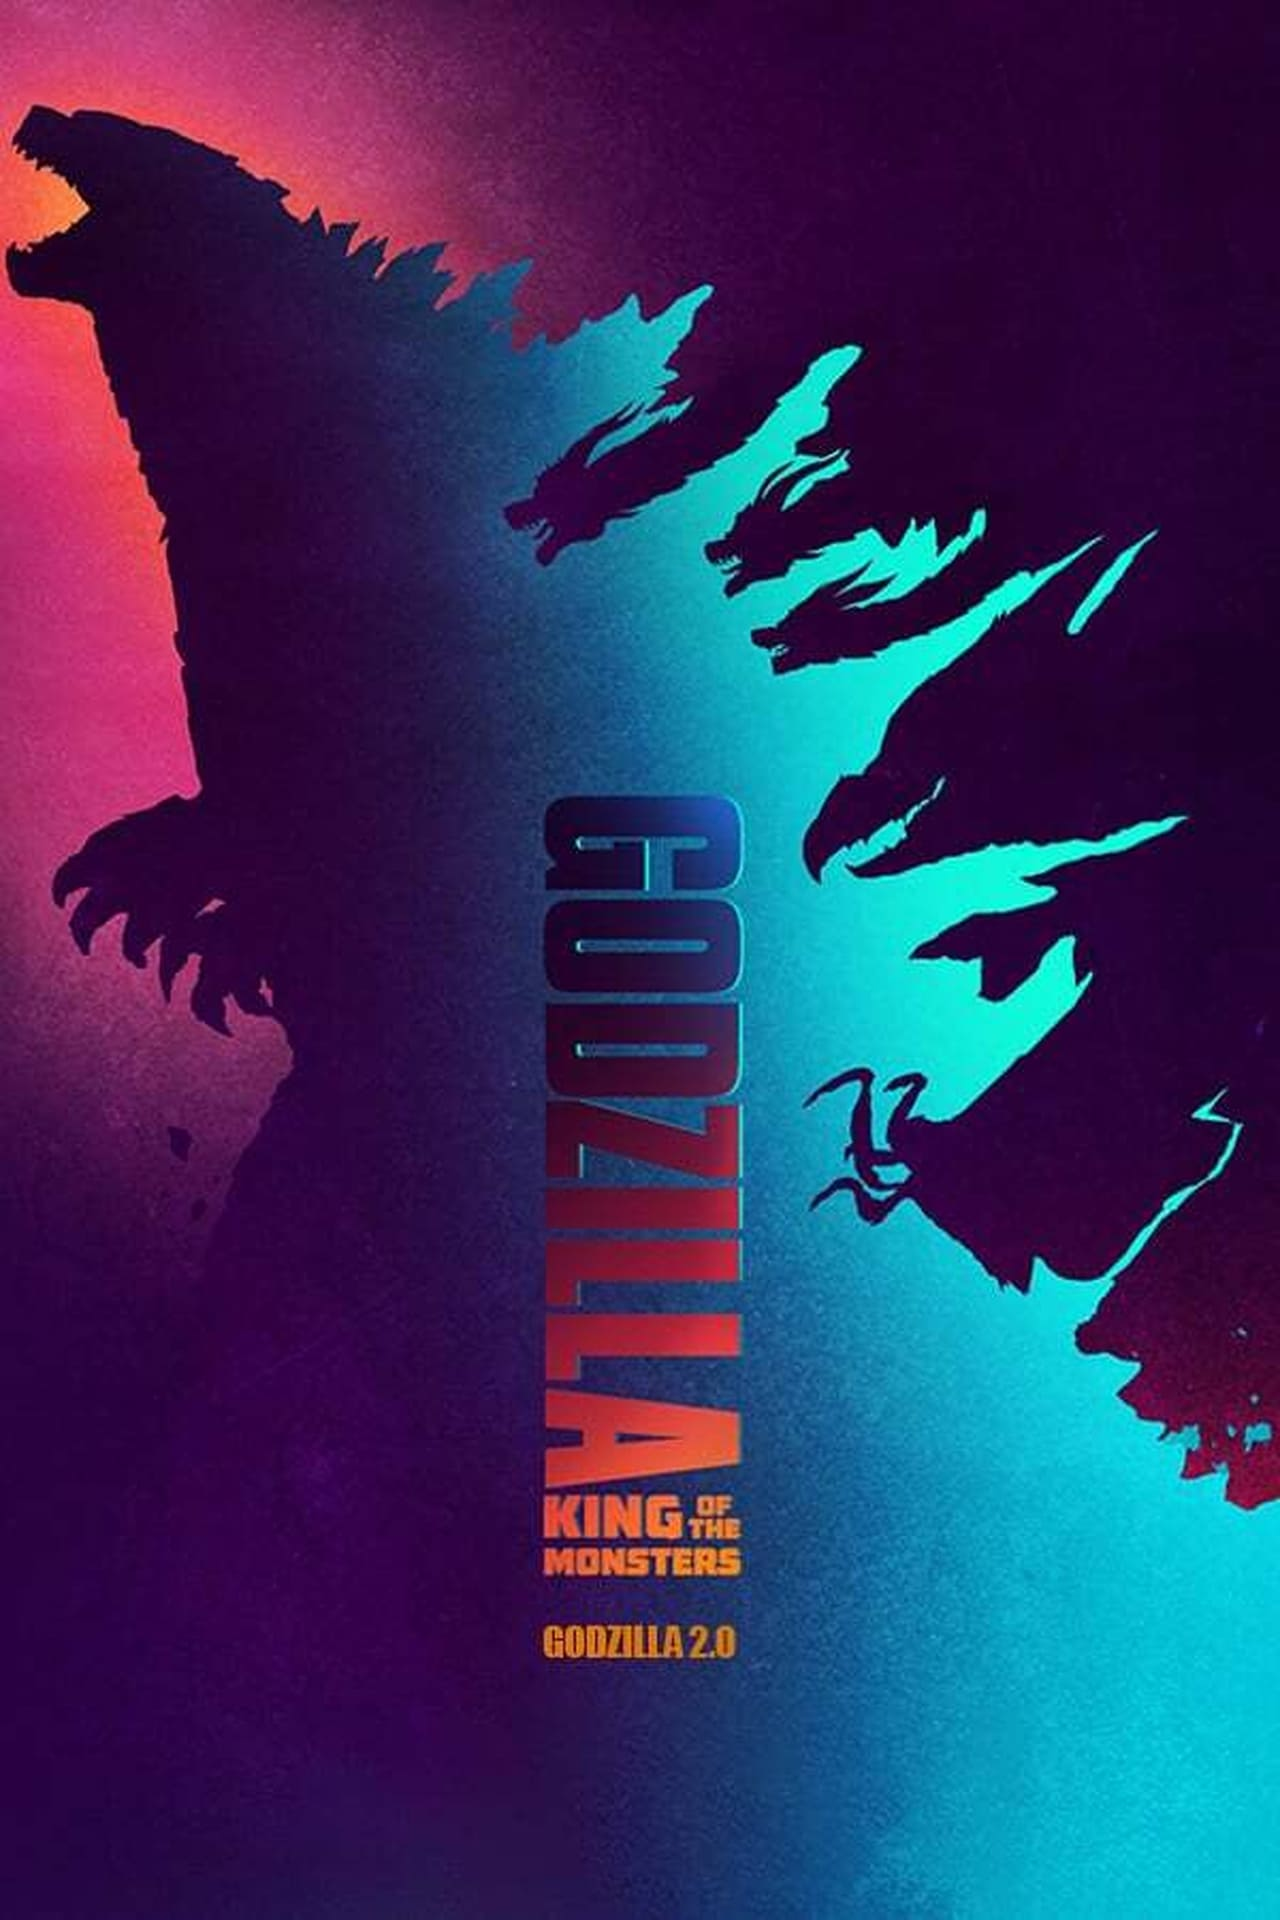 Godzilla: King of the Monsters - Godzilla 2.0